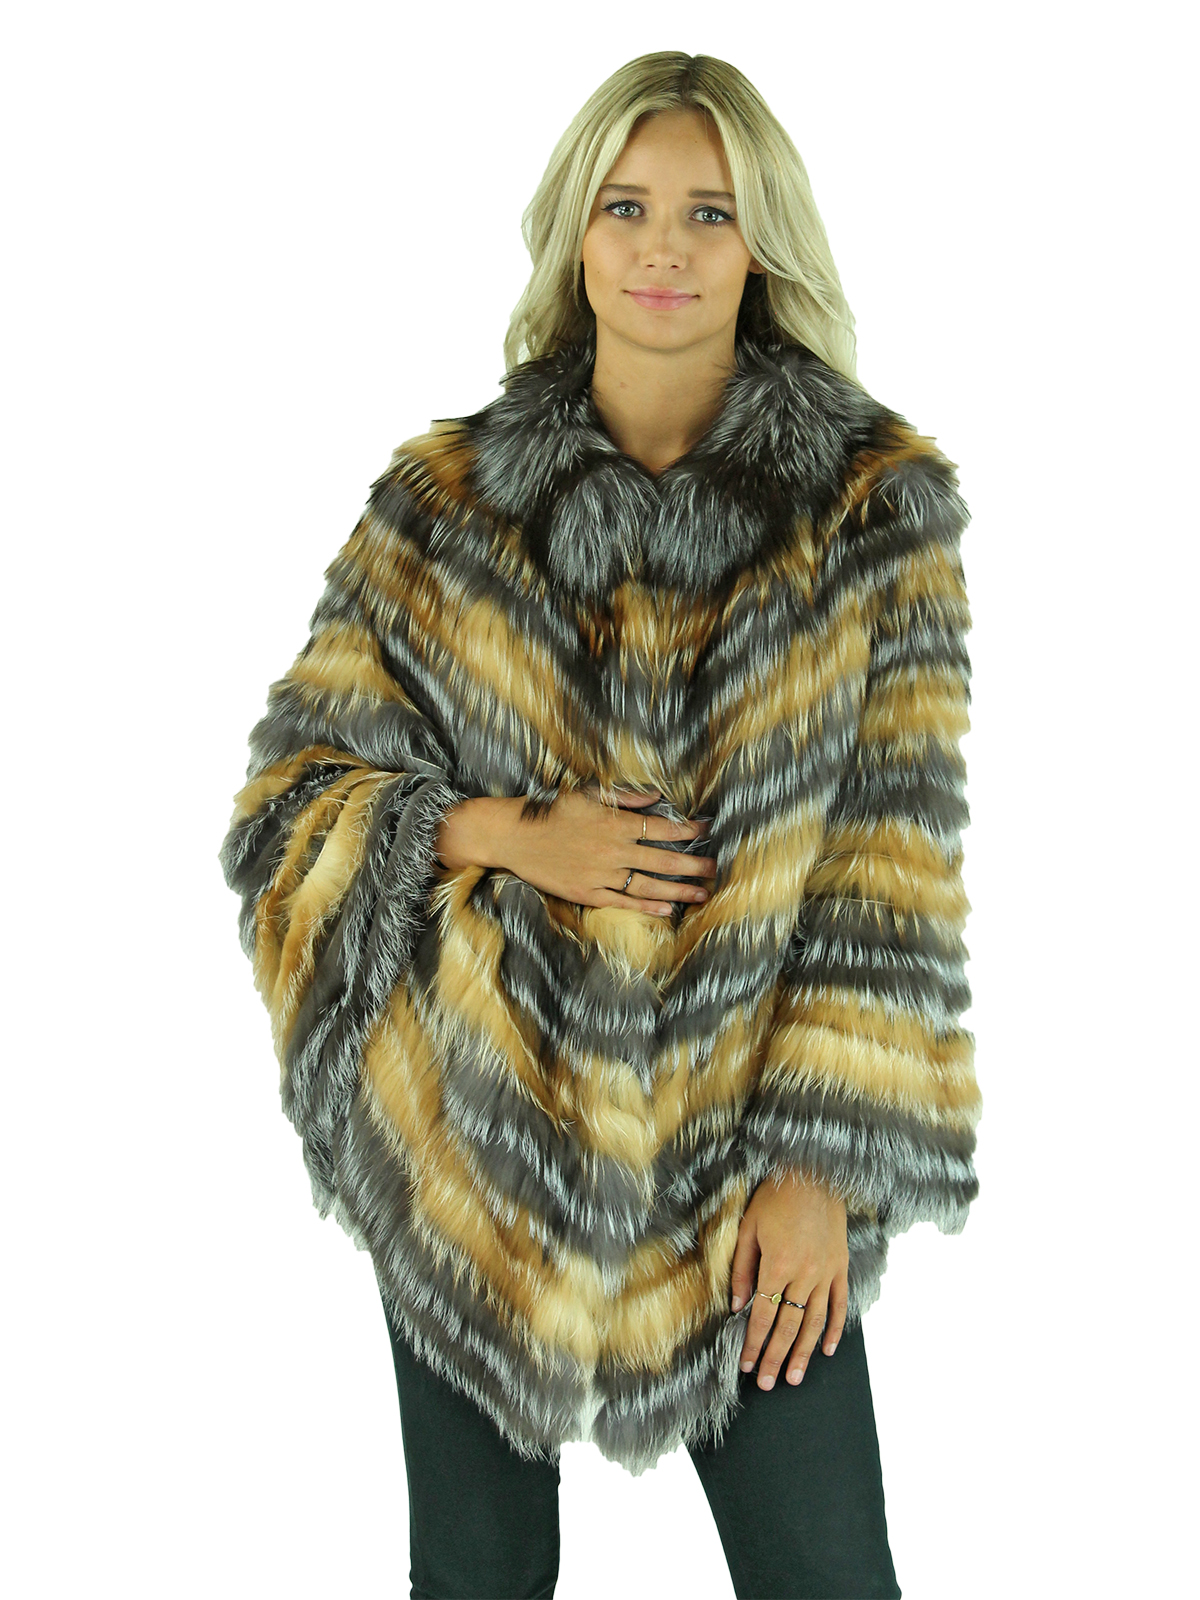 Woman's Silver and Gold Red Fox Fur Cape